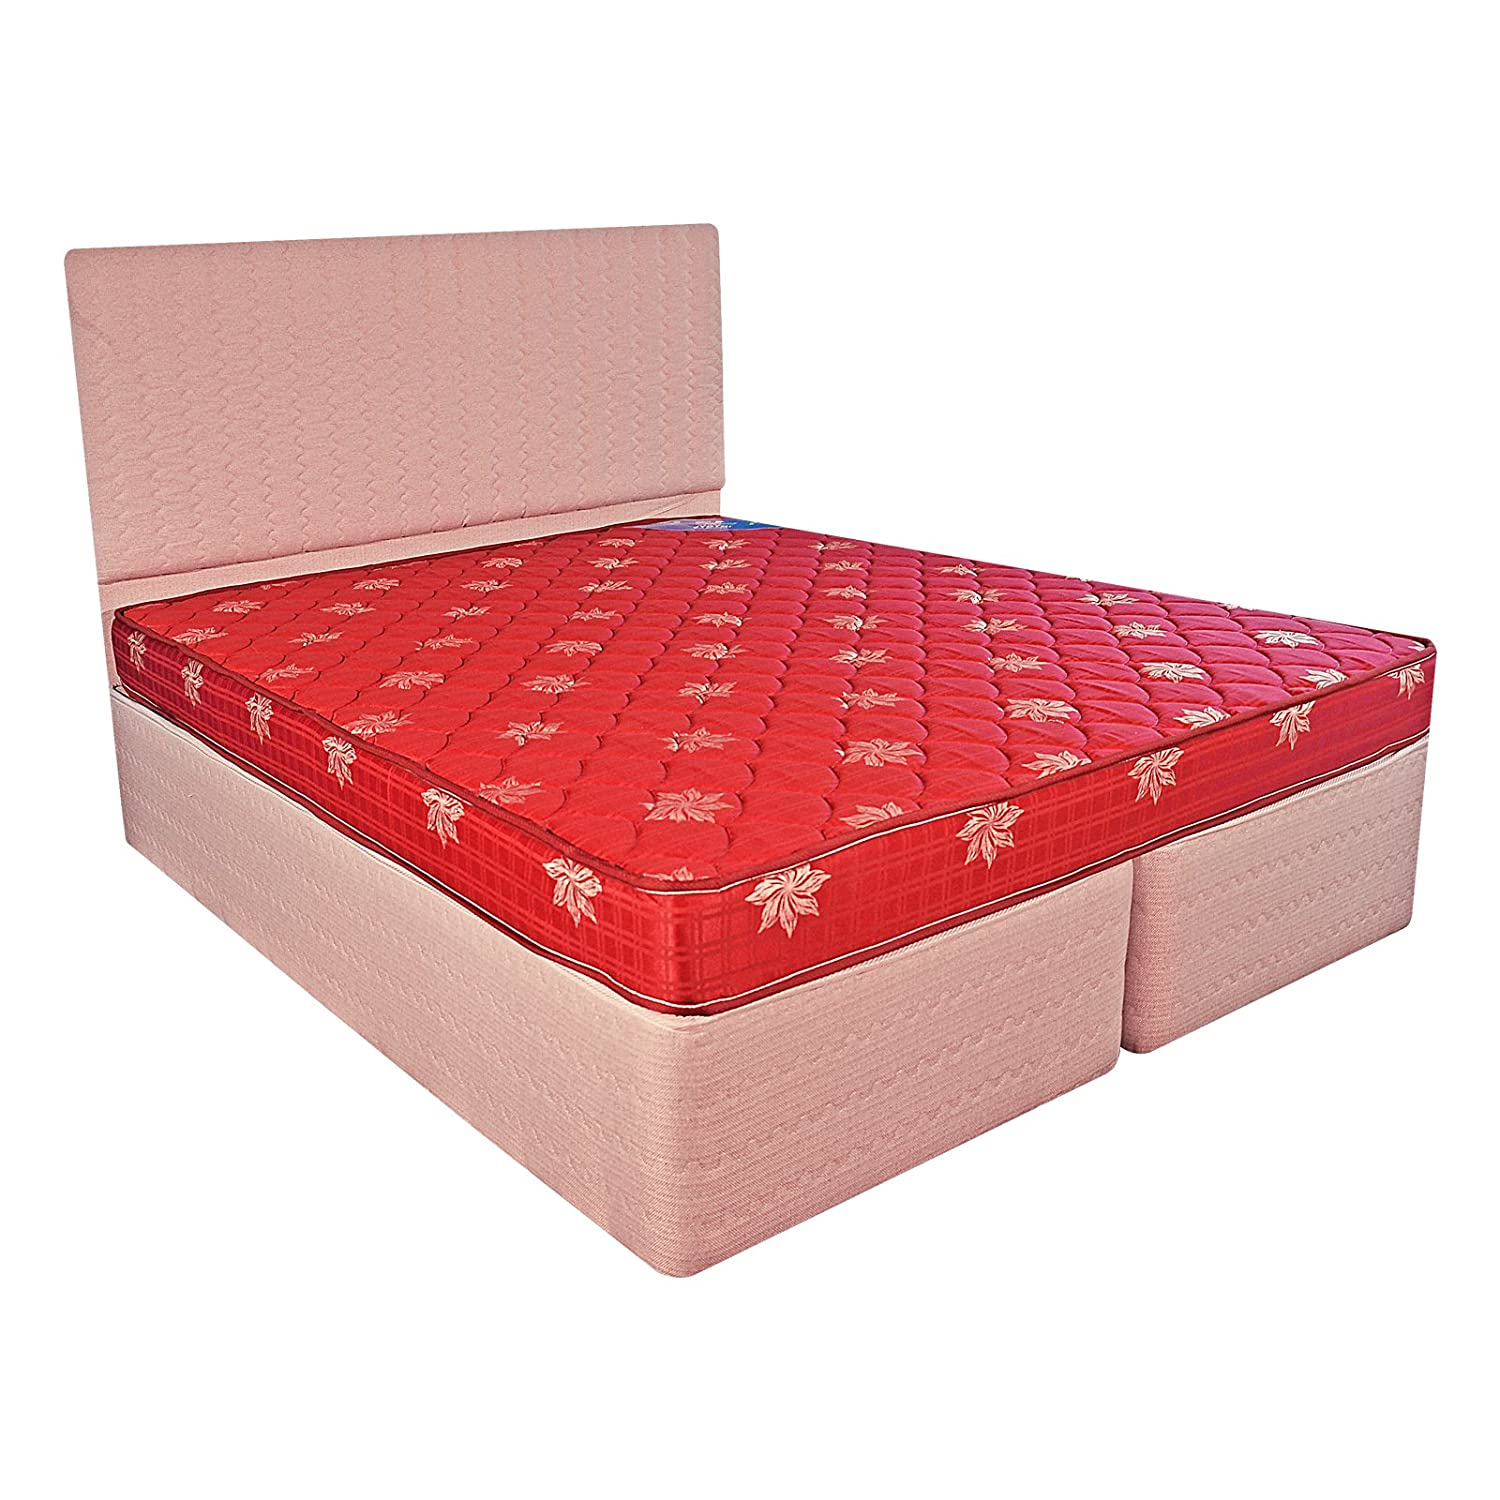 Centuary Mattresses Inch Single Size Rubberised Coir Mattress - Create a invoice for free online mattress store